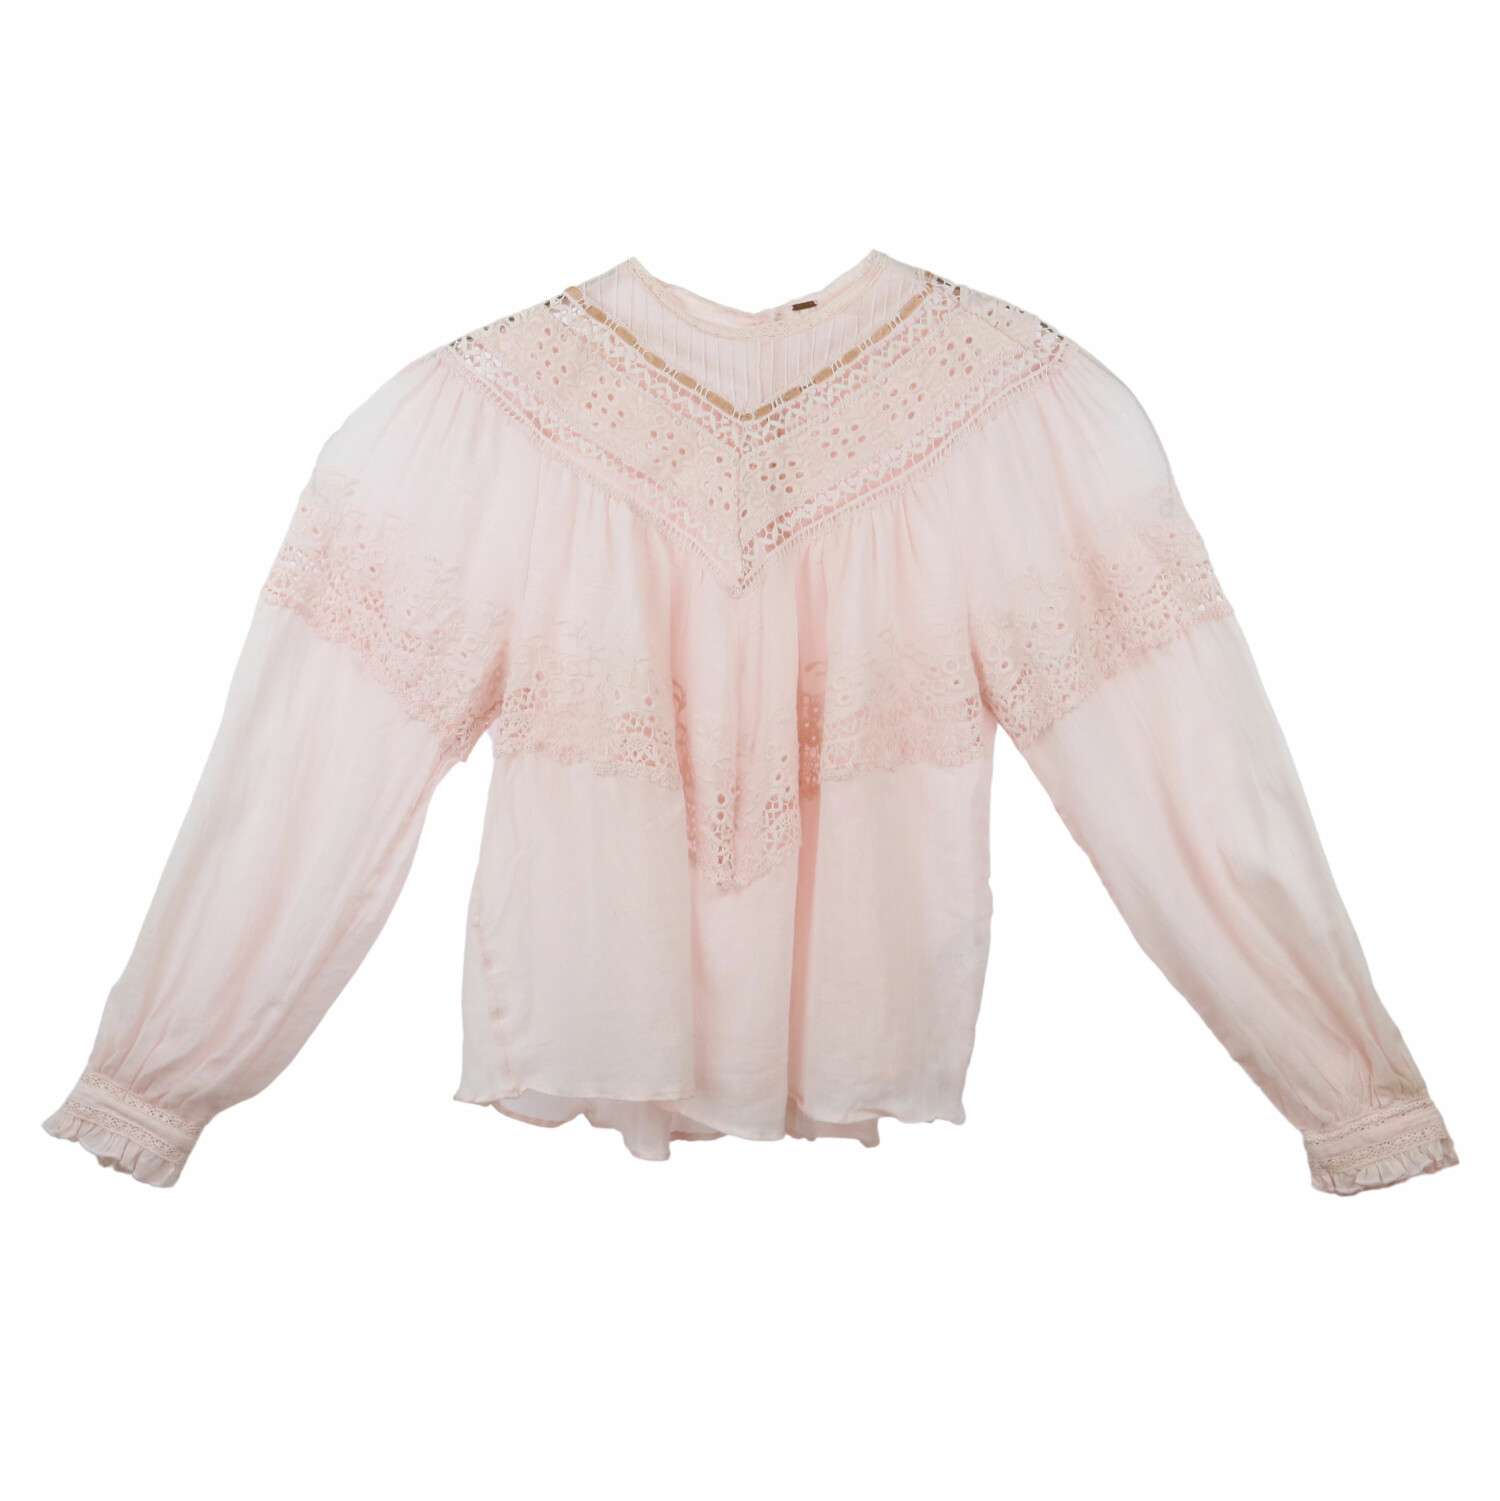 Free People Womens Moon Cake Abigail Victorian Top Blouse - S